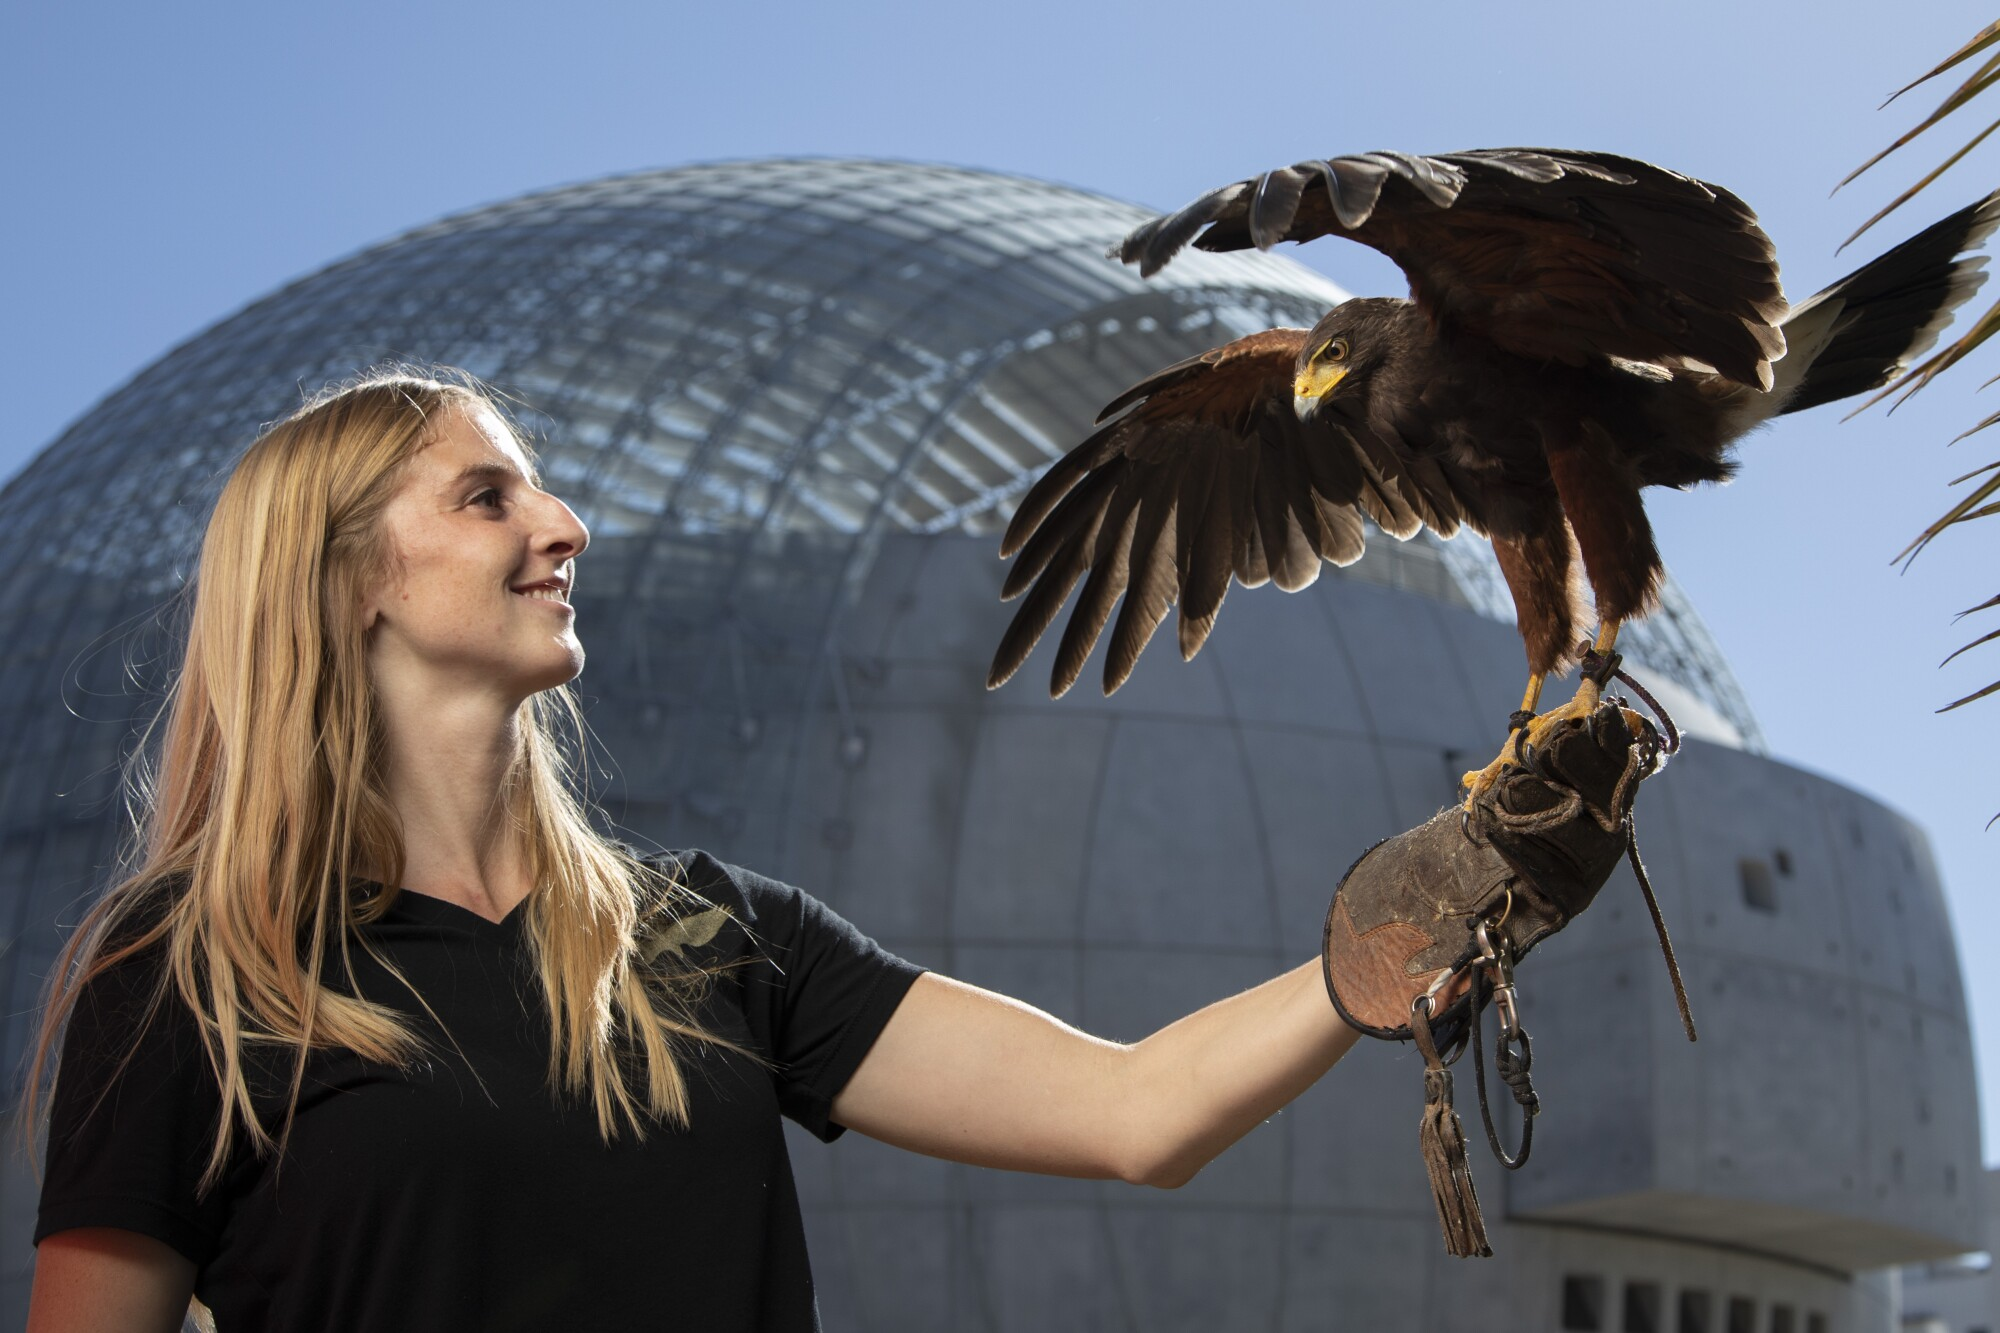 A woman looks at a hawk sitting on her gloved wrist.